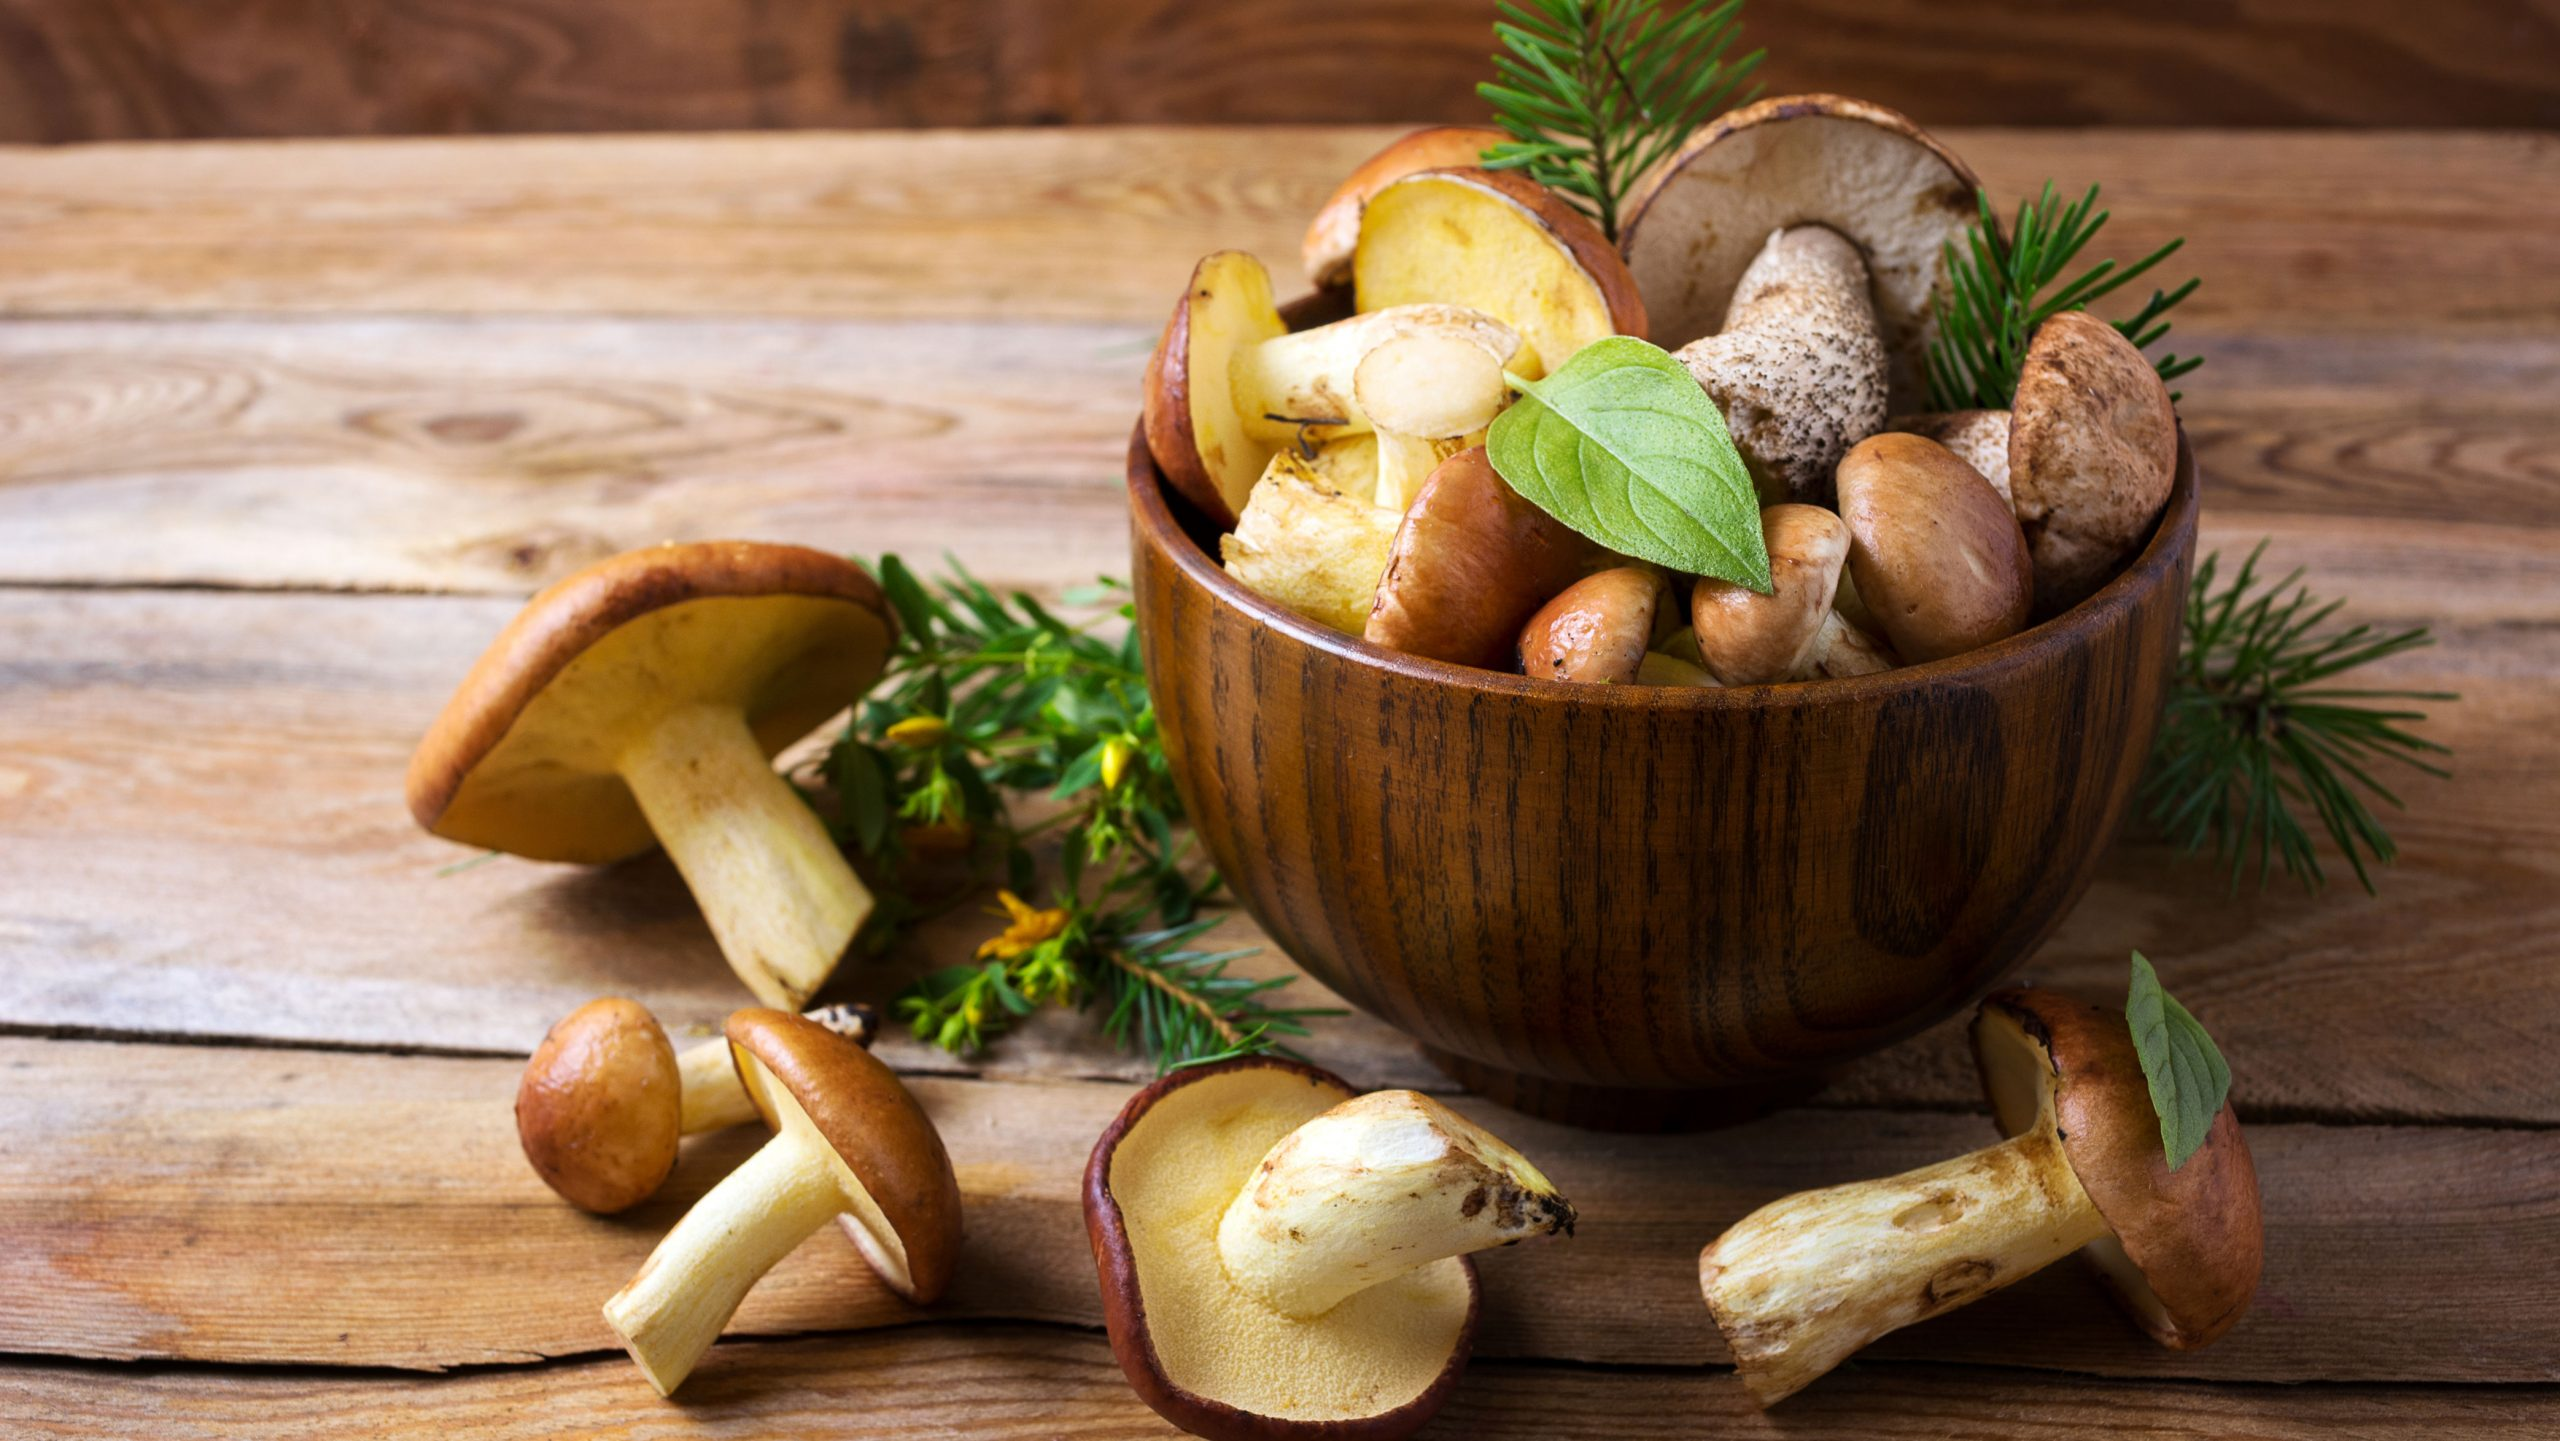 Mushrooms for Your Immune System Health